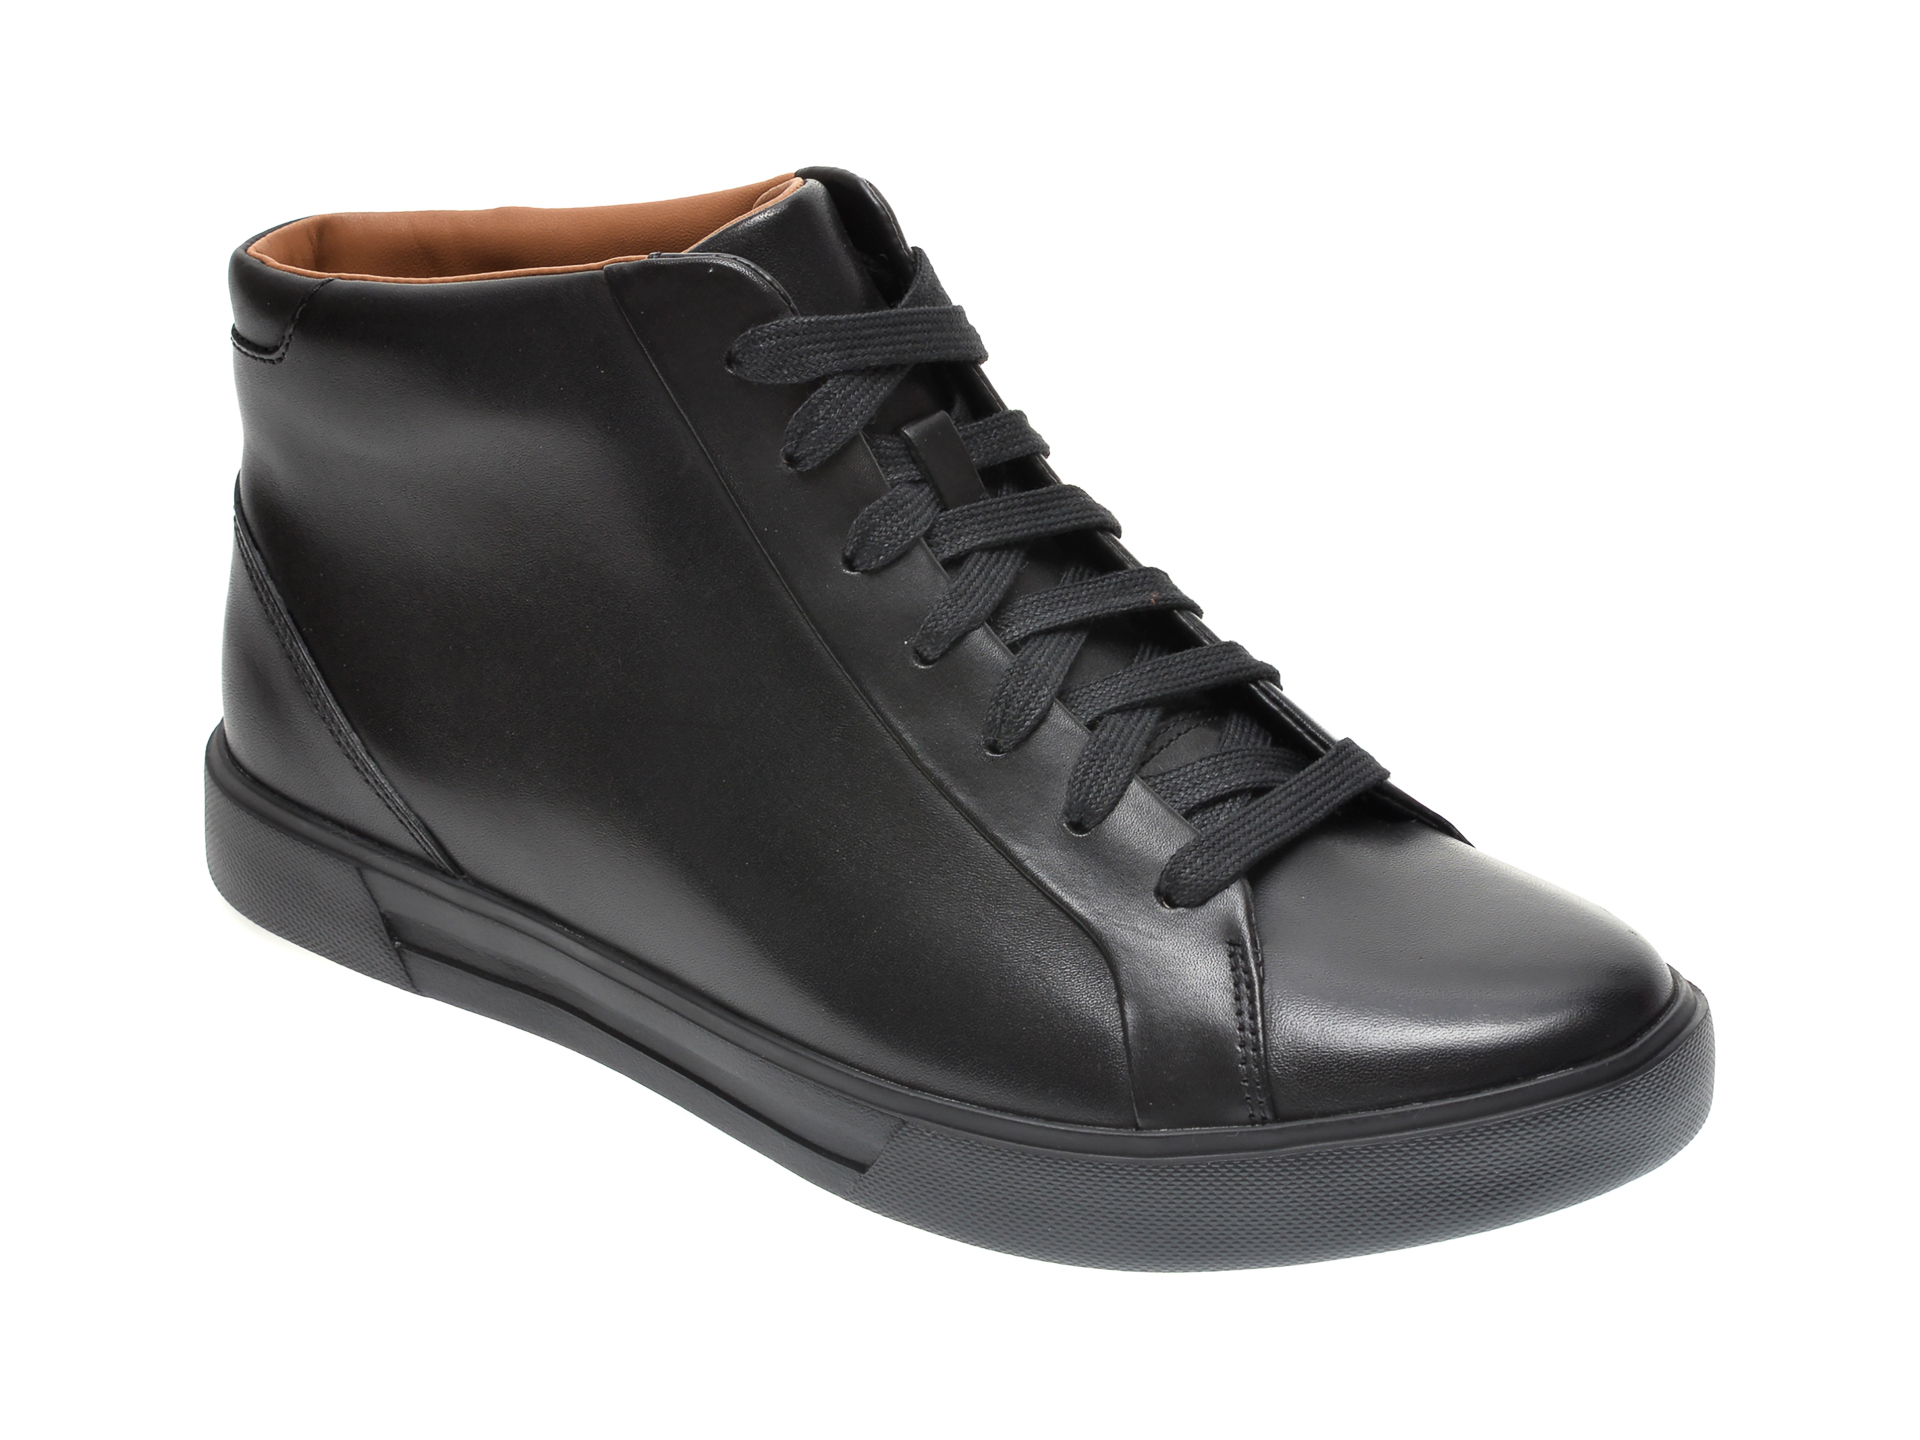 Ghete CLARKS negre, UN COSTA MID, din piele naturala imagine